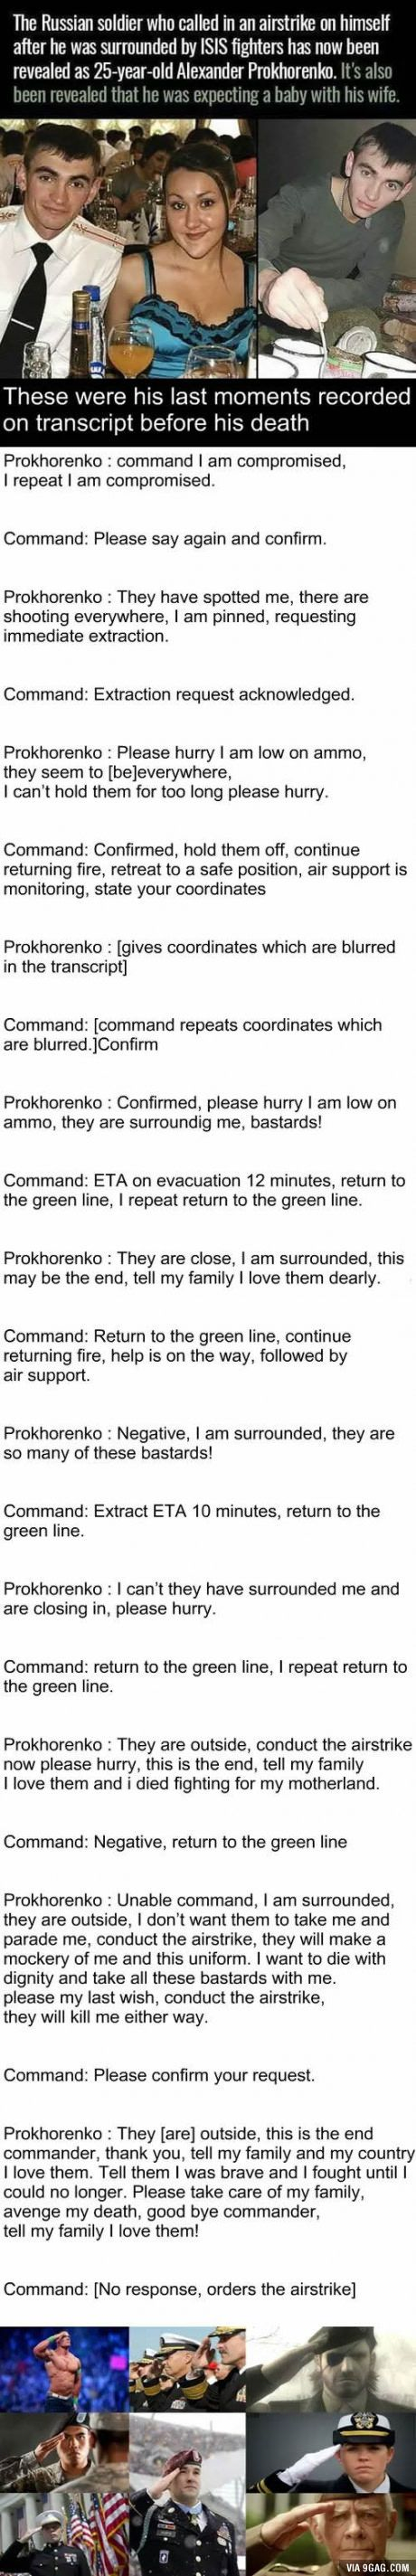 This should be taught in school, how Bravely this Hero fought and the sacrifices he made  Alexander Prokhorenko, a true hero...